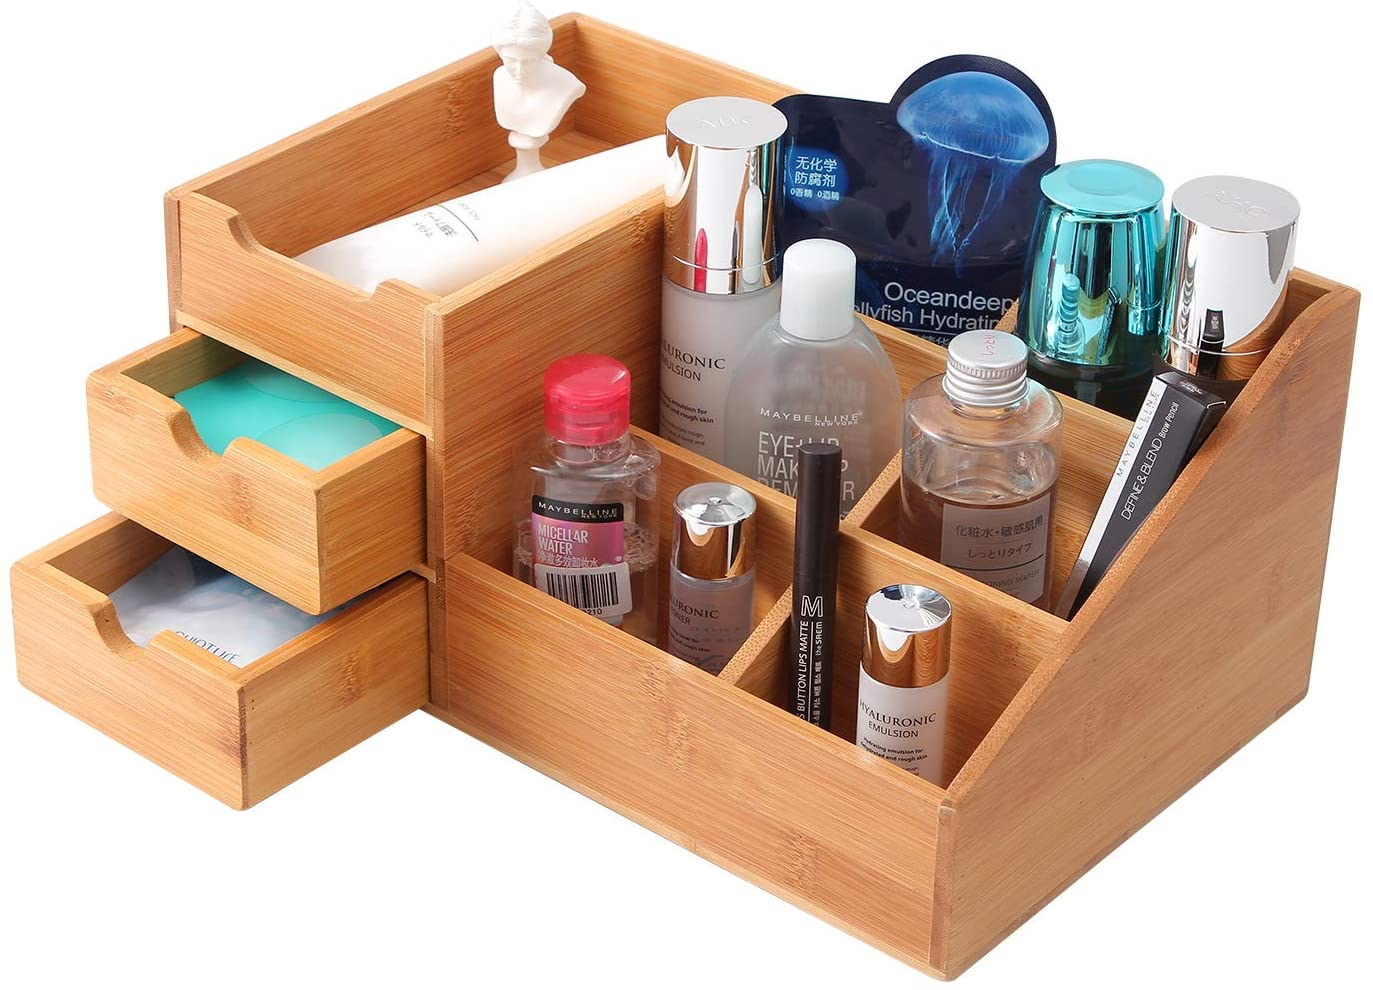 Amazon Com Homode Makeup Organizer Bamboo Wood Vanity Countertop Organizer Cosmetic Jewelry Storage Tray With Drawers For Bathroom Home Kitchen